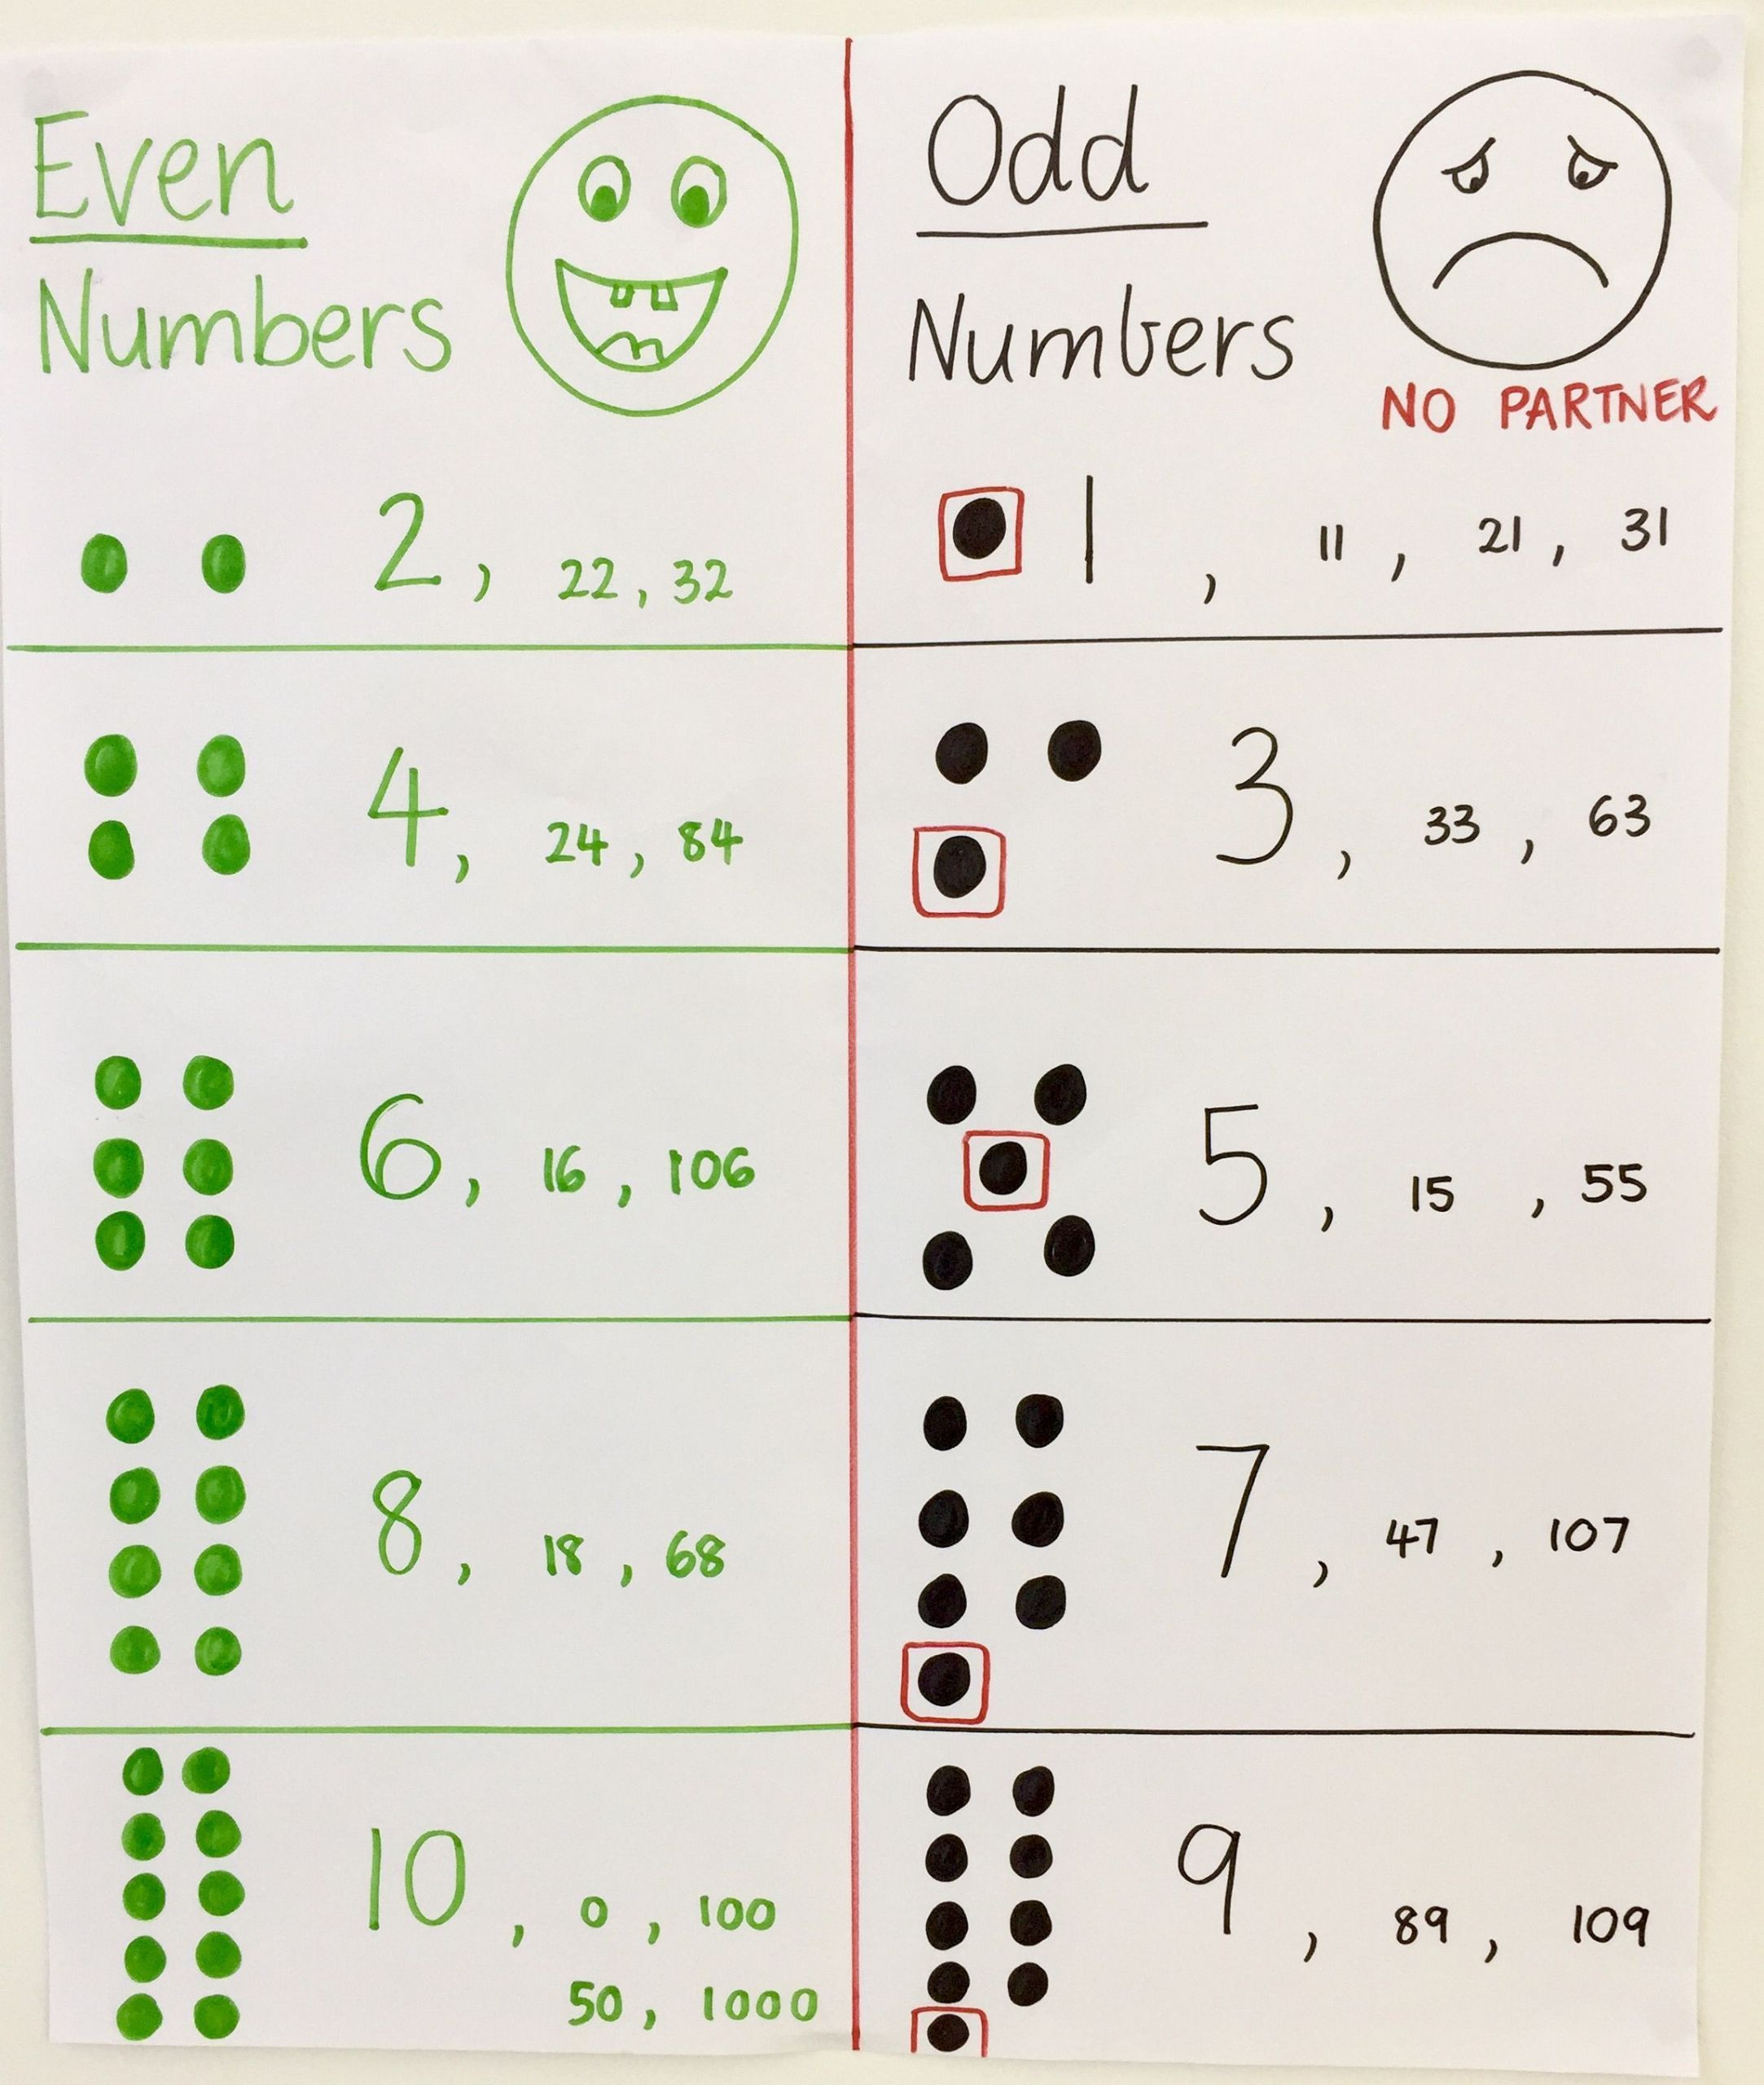 6 even and Odd Numbers Worksheet Printable in 2020   Number worksheets [ 2560 x 2166 Pixel ]